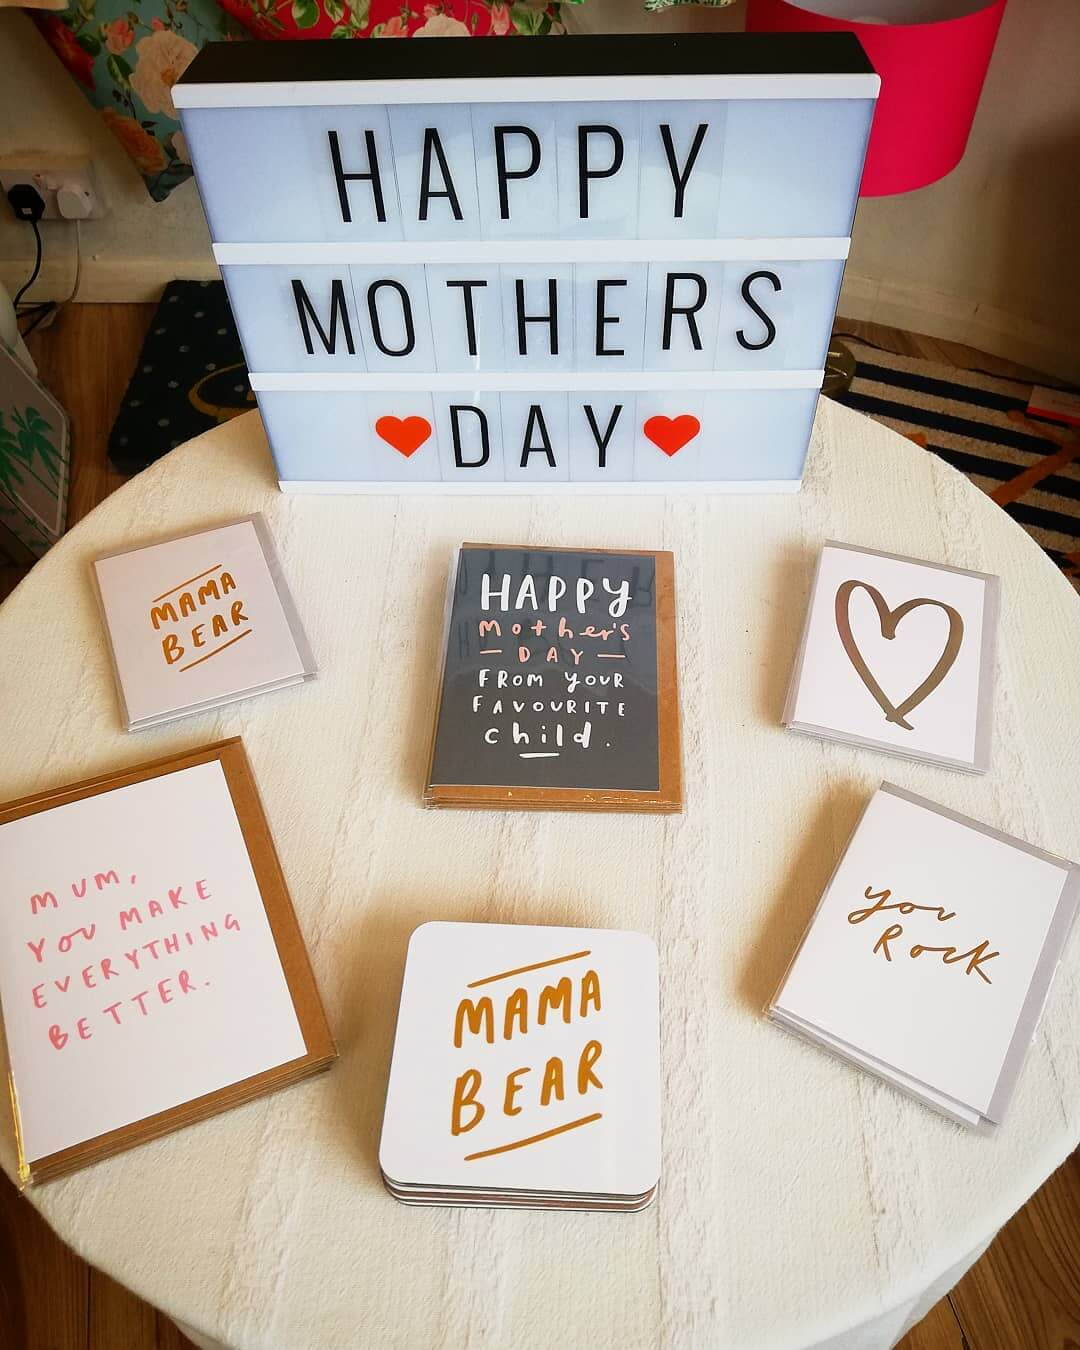 💐 Plenty of Mother's Day cards and gifts at Inle Home! Sunday 31st March